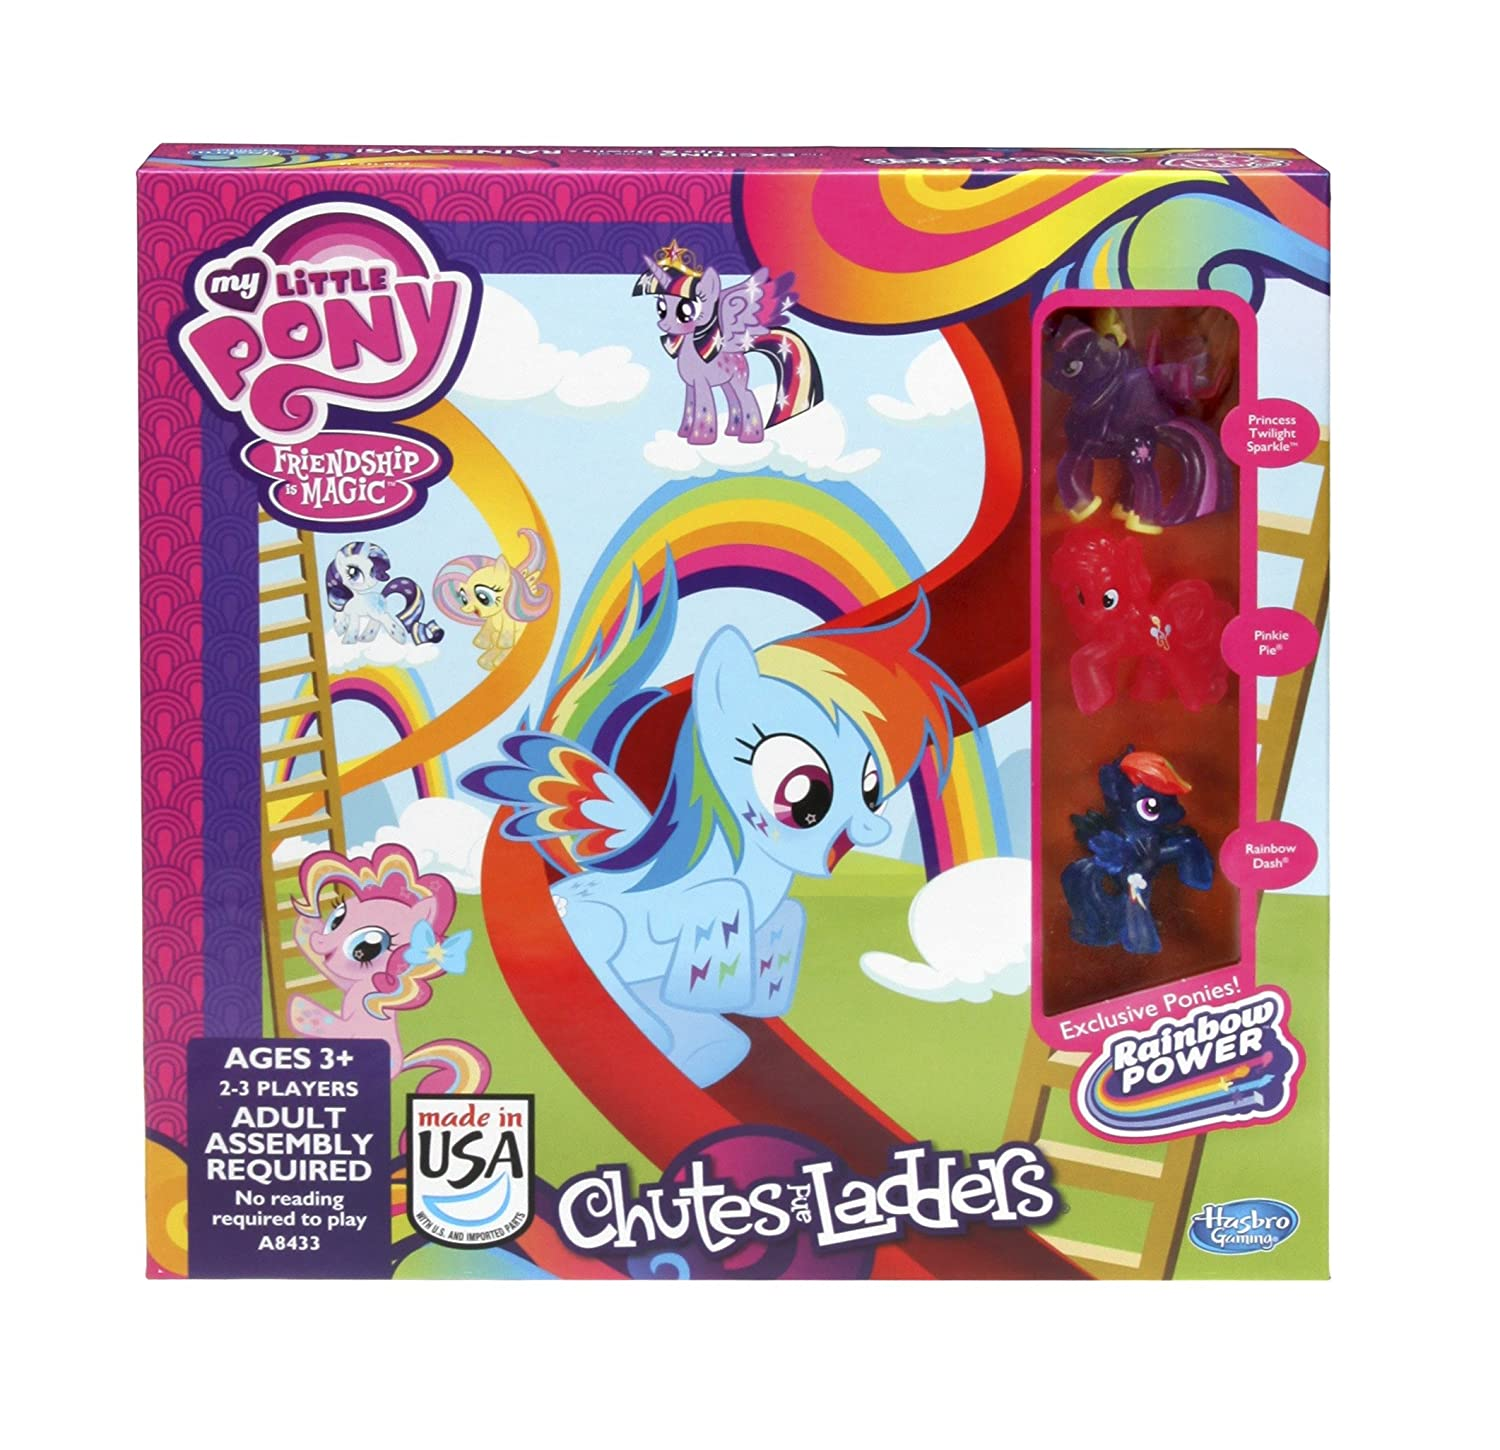 My Little Pony Chutes and Ladders Game